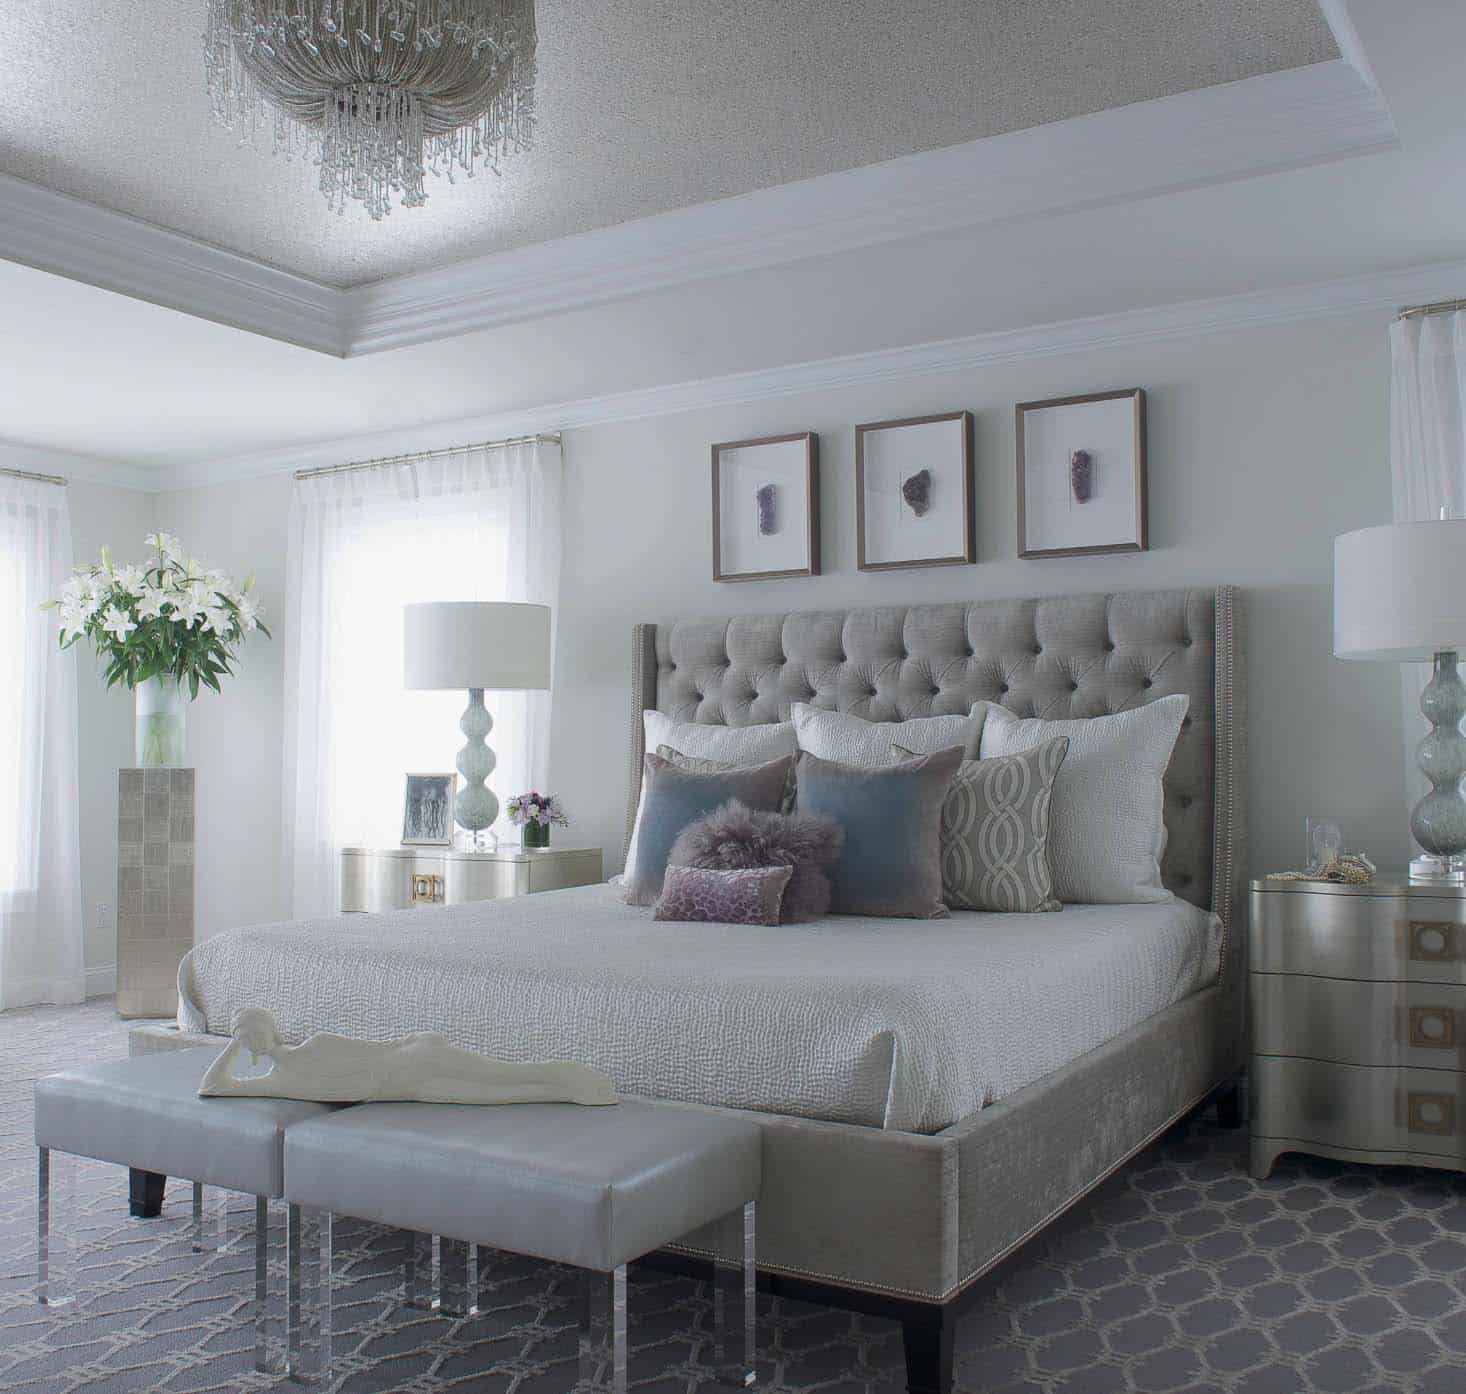 Master Bedroom Decorating Ideas: 20+ Serene And Elegant Master Bedroom Decorating Ideas